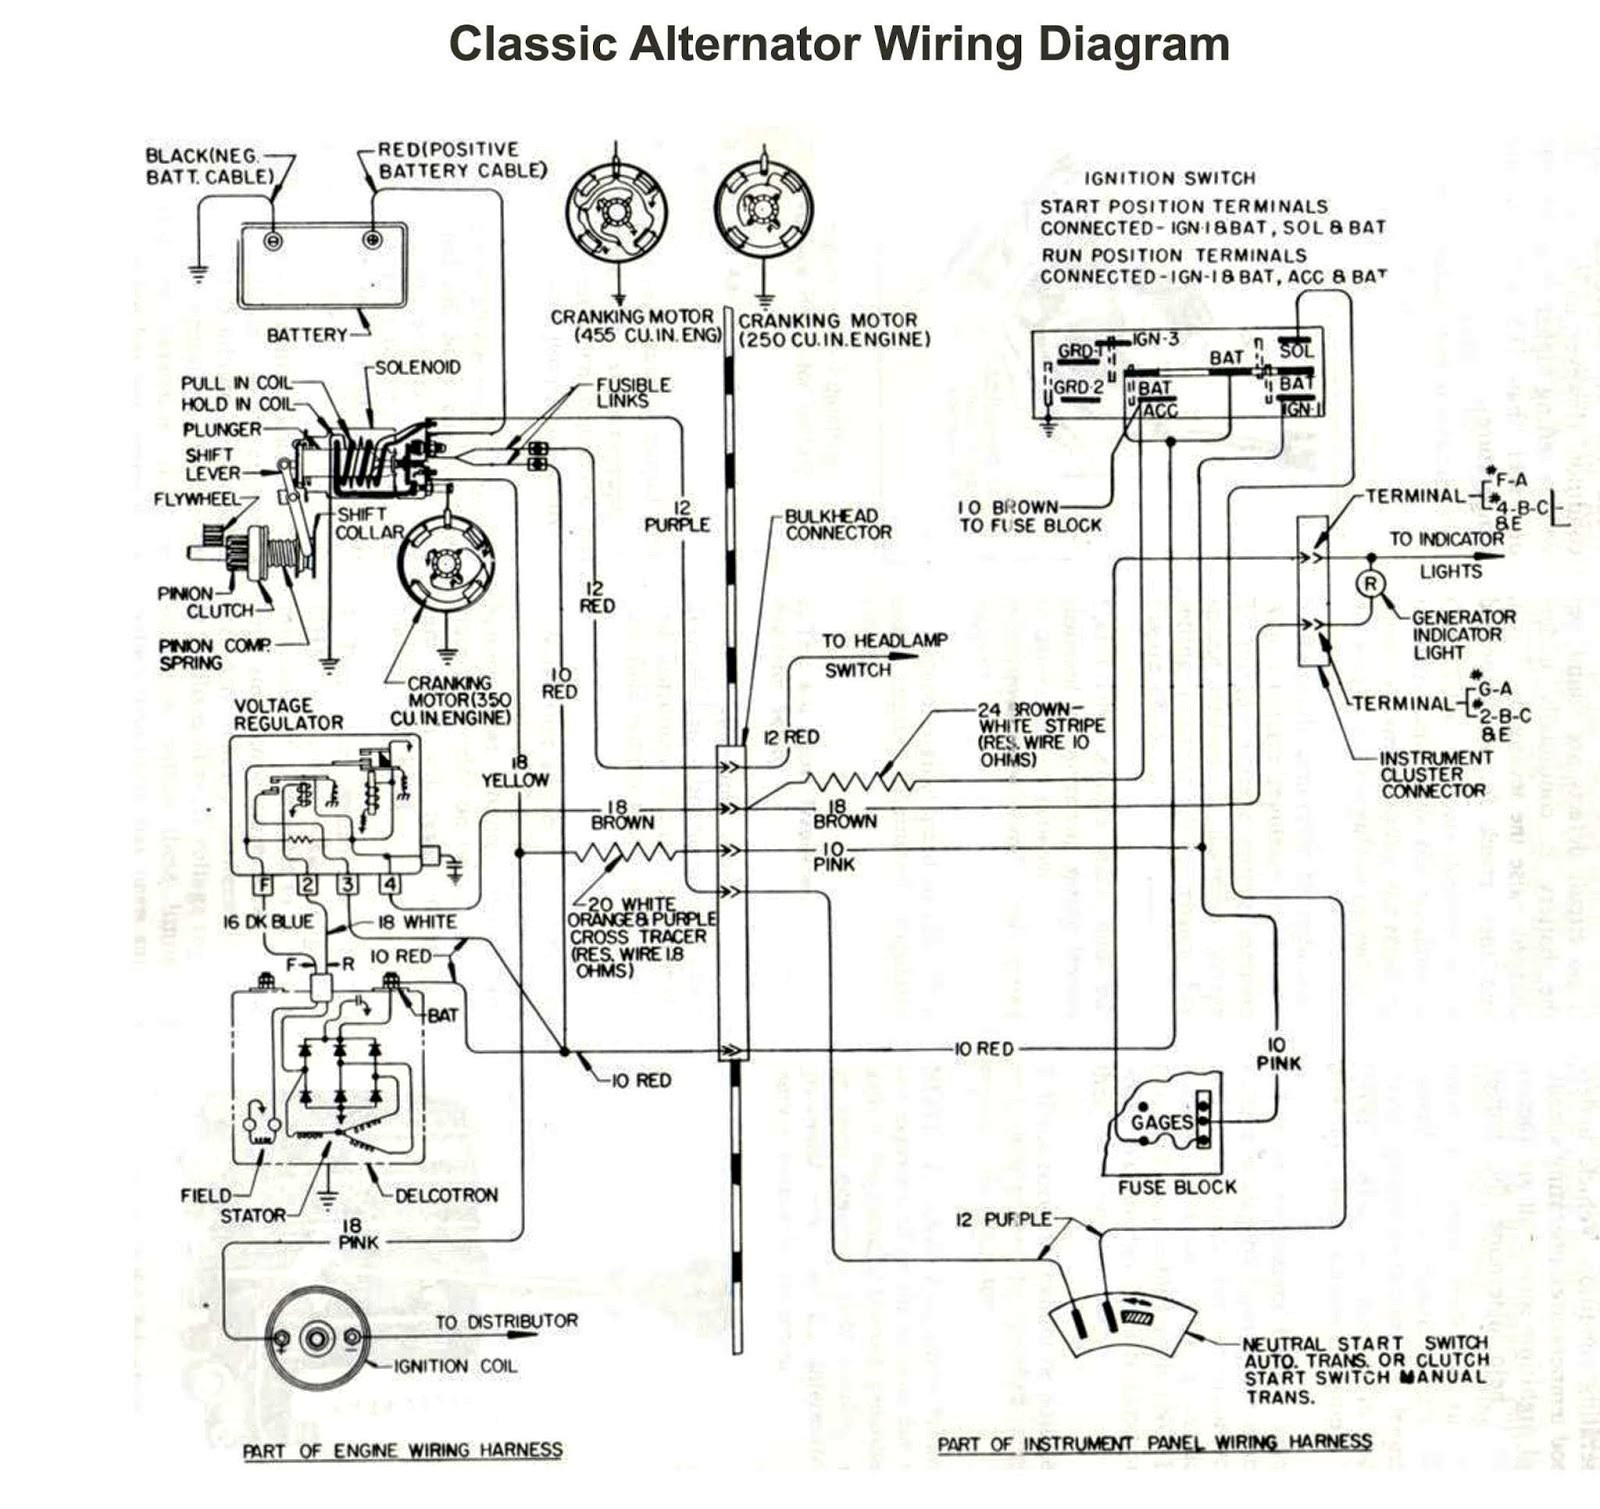 hight resolution of century pool pump wiring diagram lzk gallery data wiring diagram today leeson electric motor wiring diagram